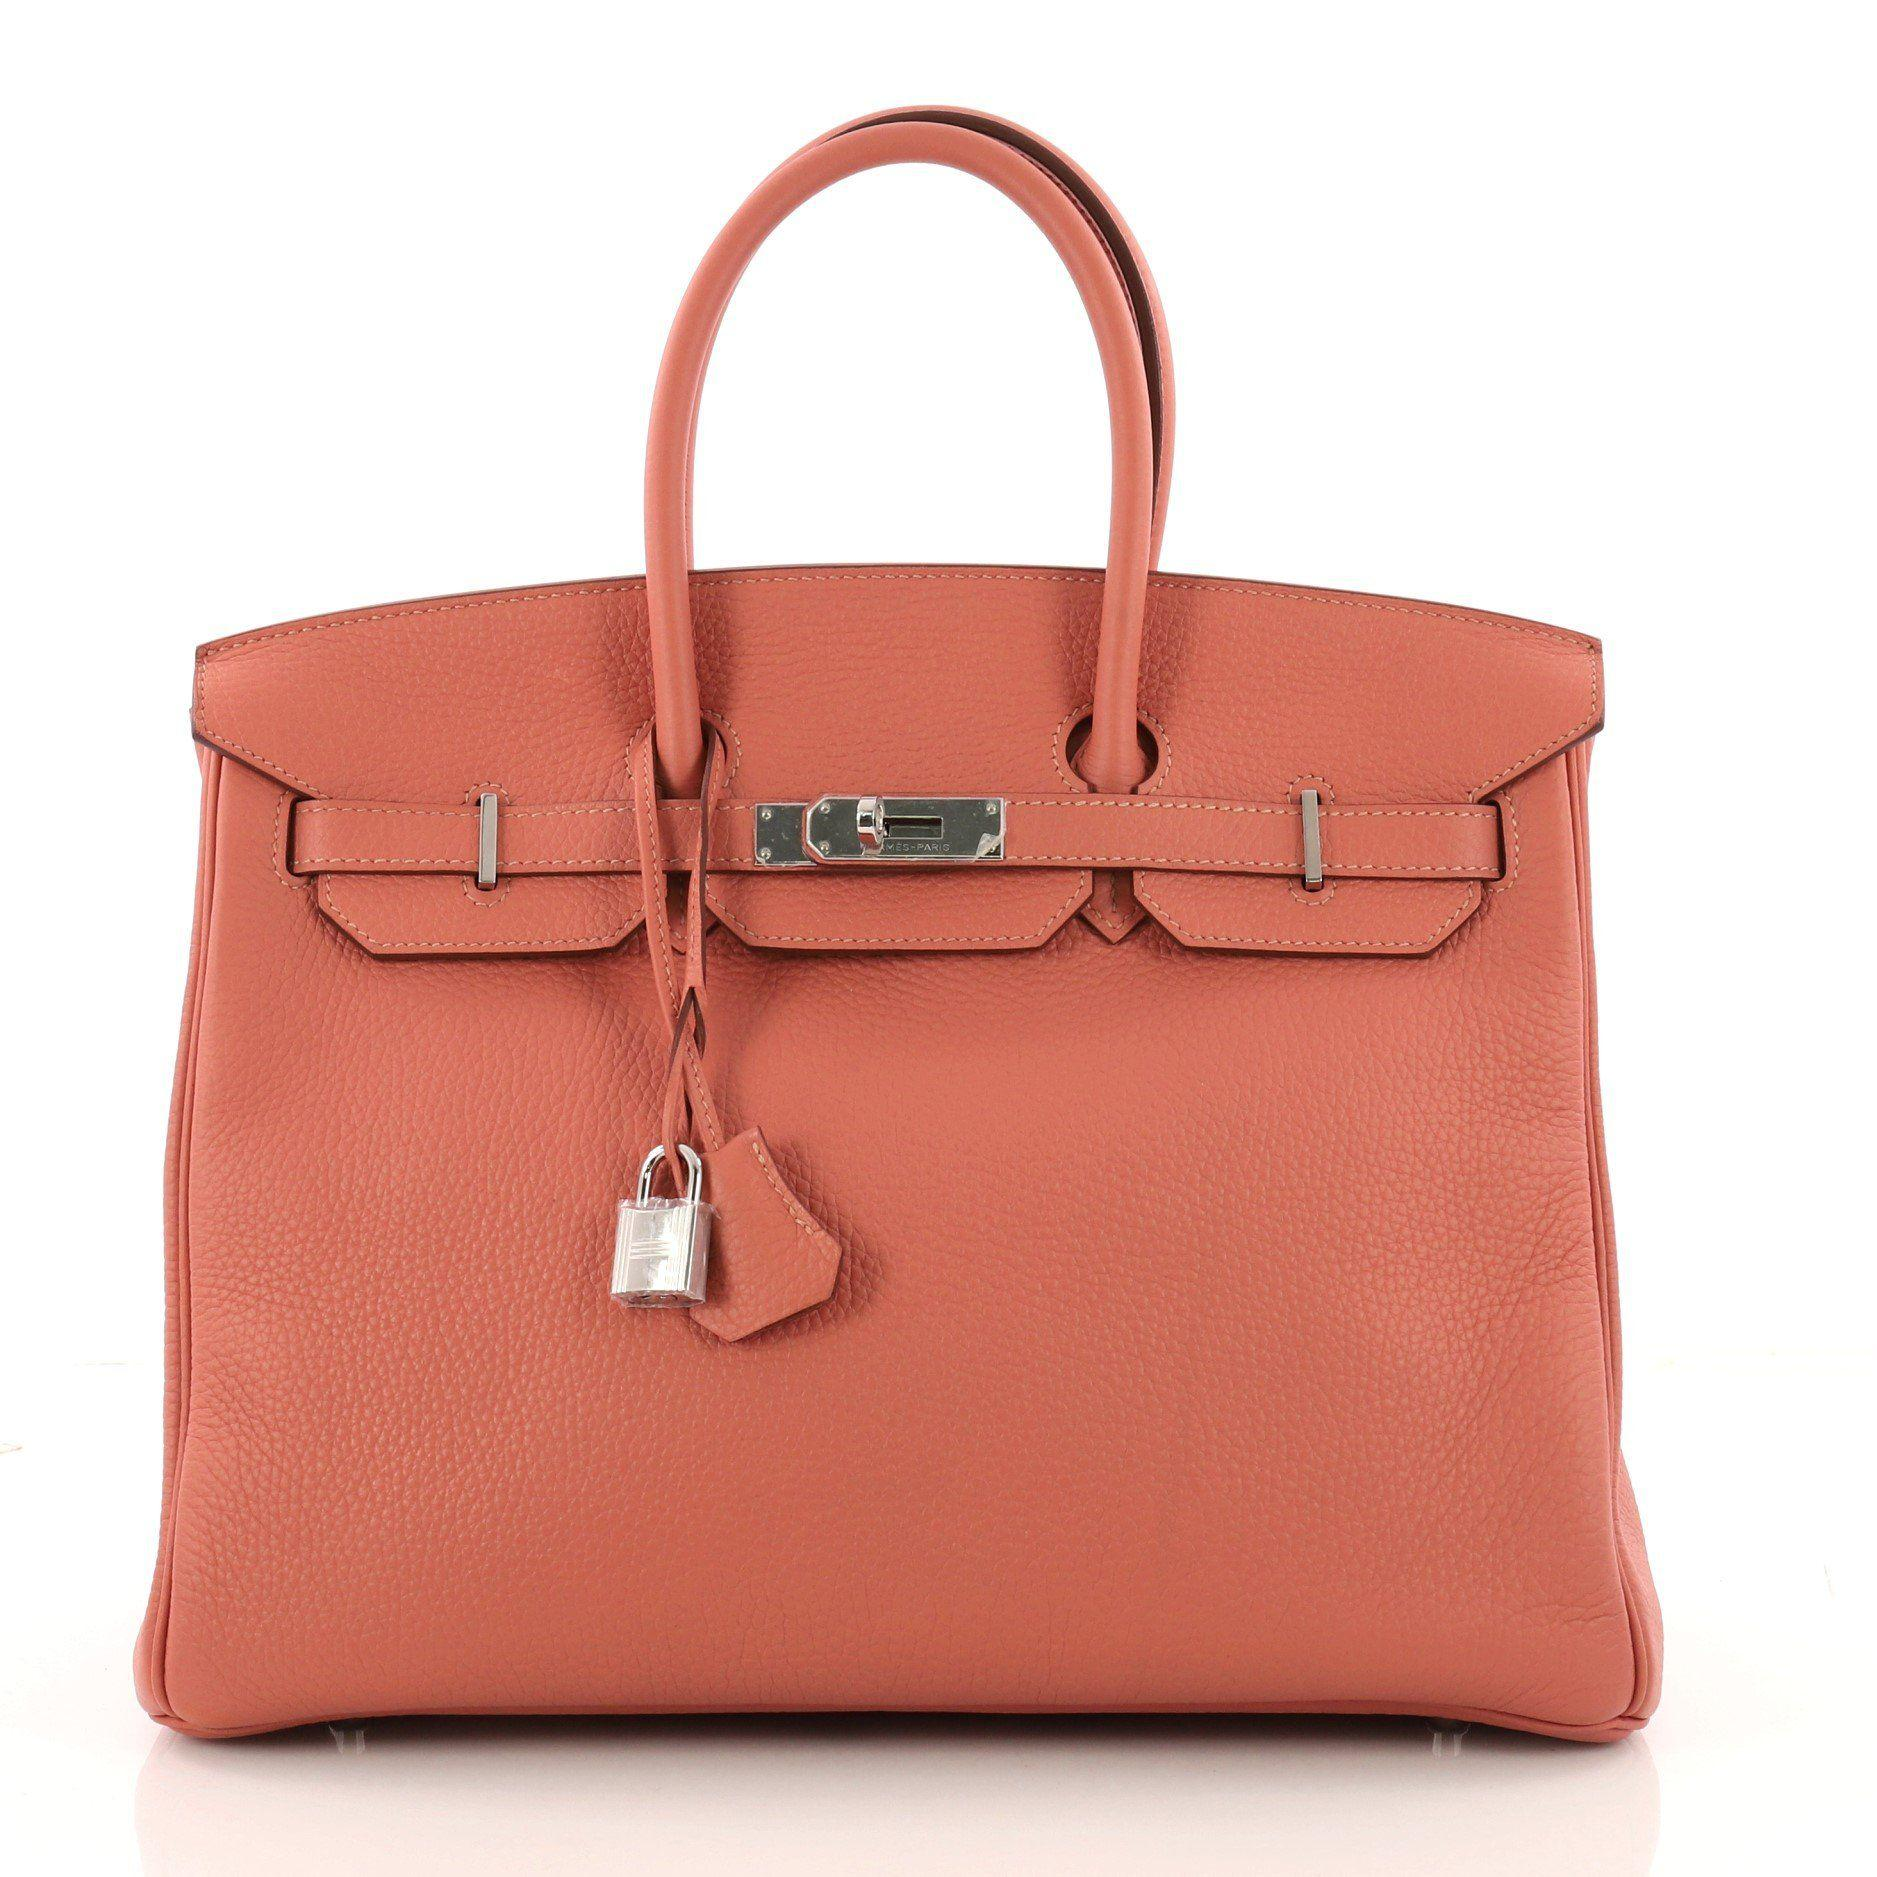 1c94a9aeb538 Lyst - Hermès Pre Owned Birkin Handbag Rose Tea Clemence With ...